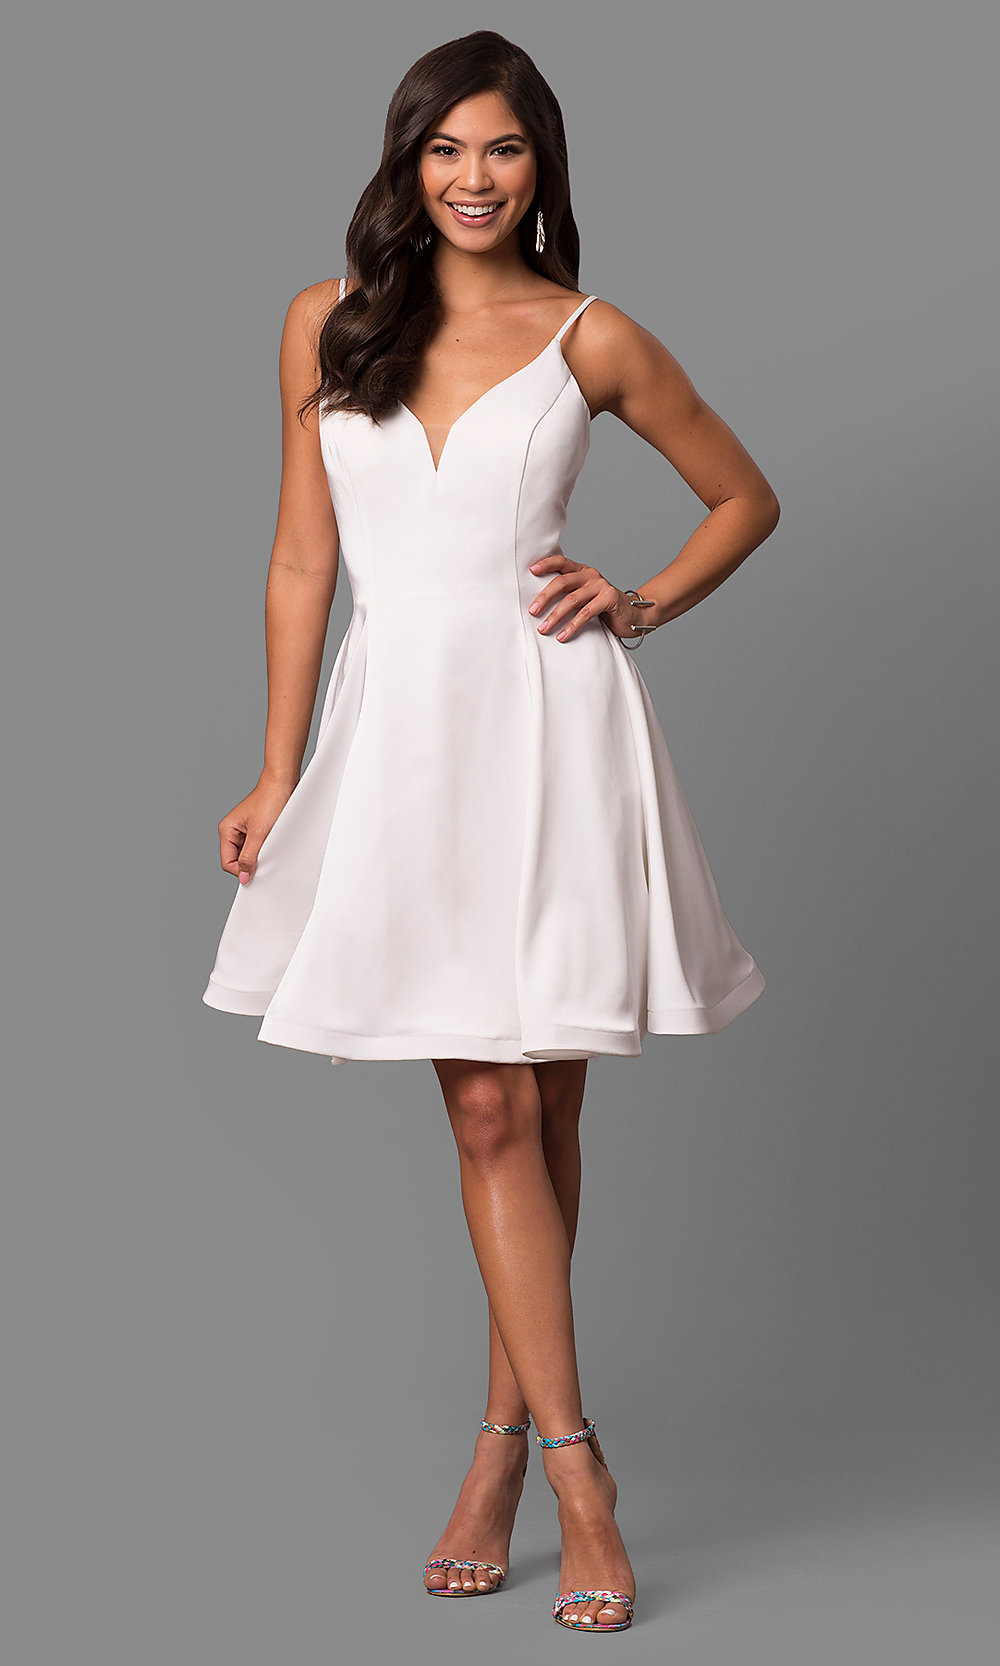 Short white homecoming dresses with straps